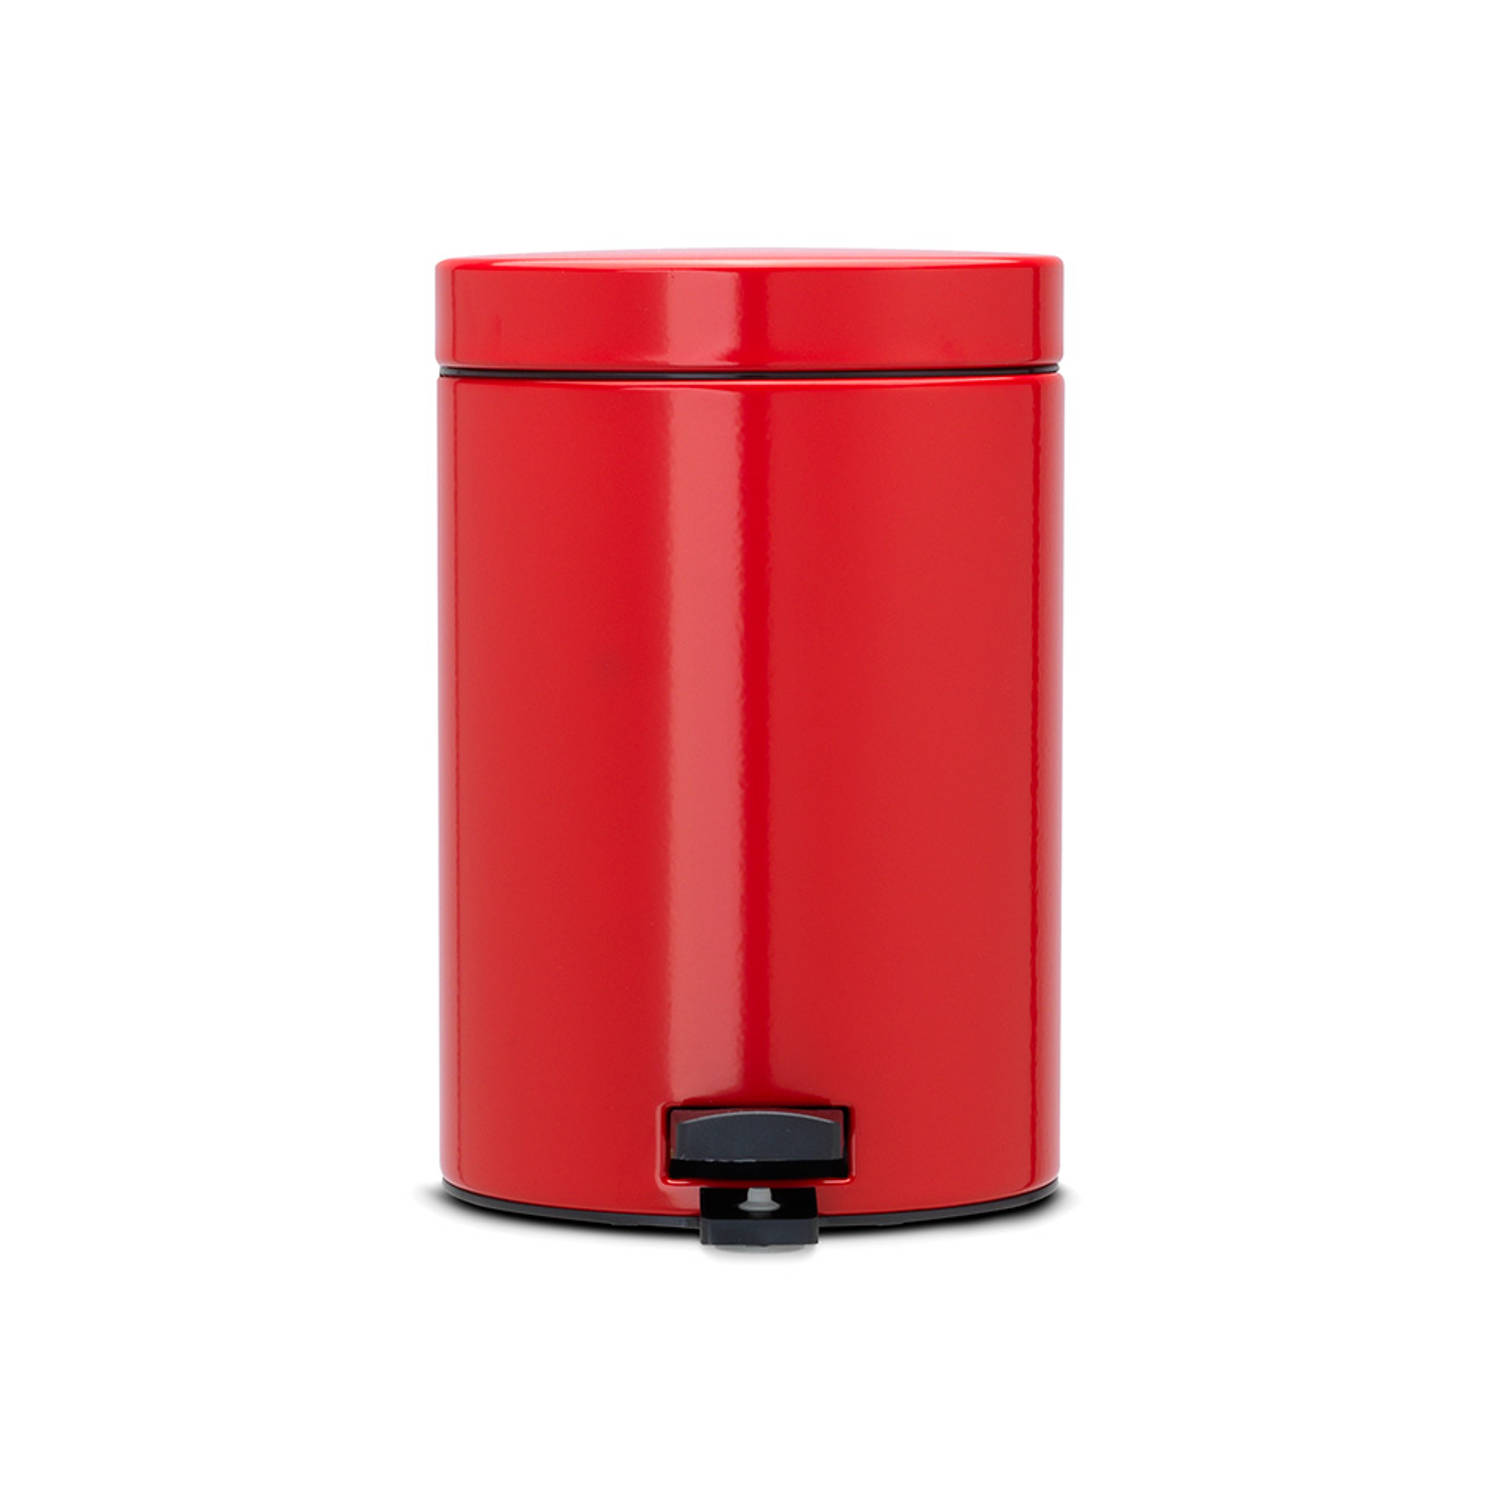 Brabantia pedaalemmer - 3 liter - passion red